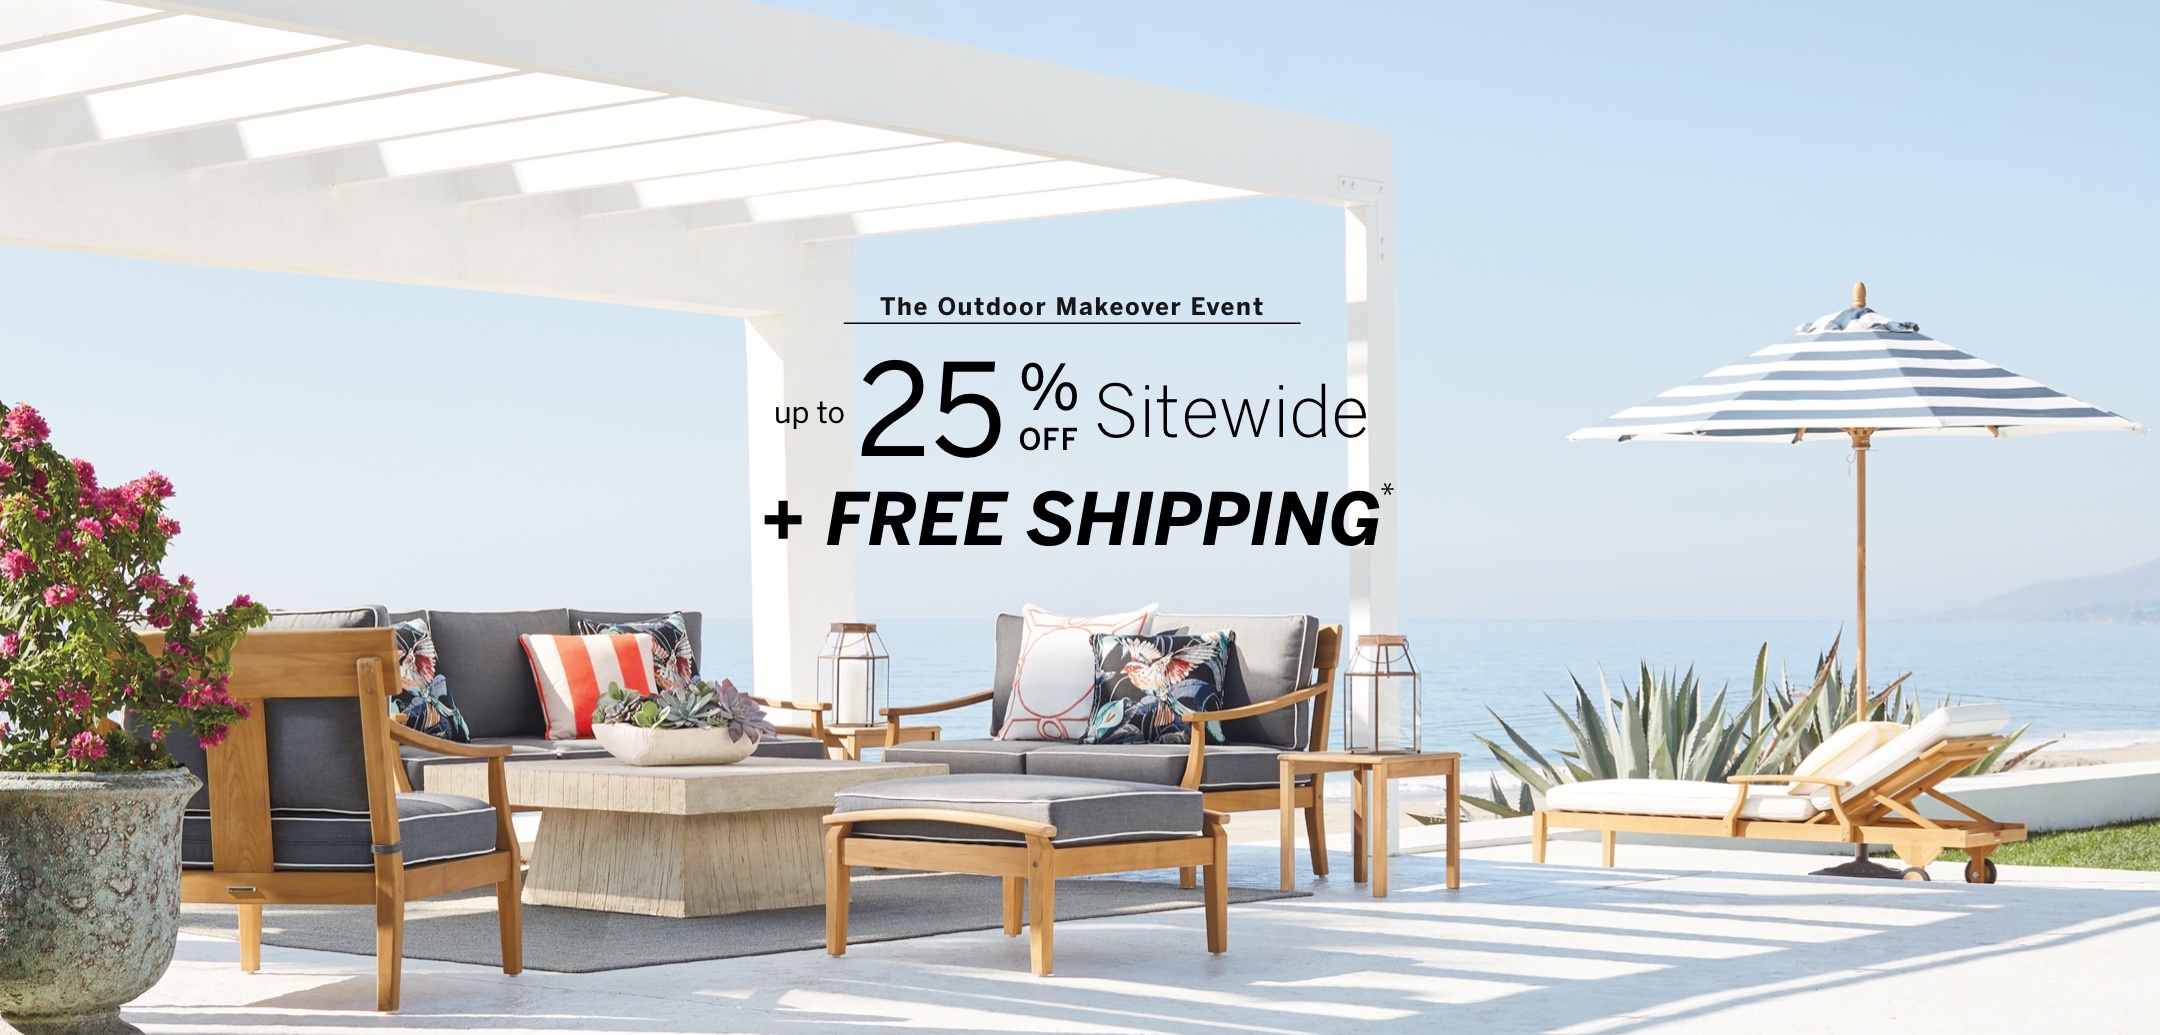 The Outdoor Makeover Event, up to 25% off Sitewide + Free Shipping*